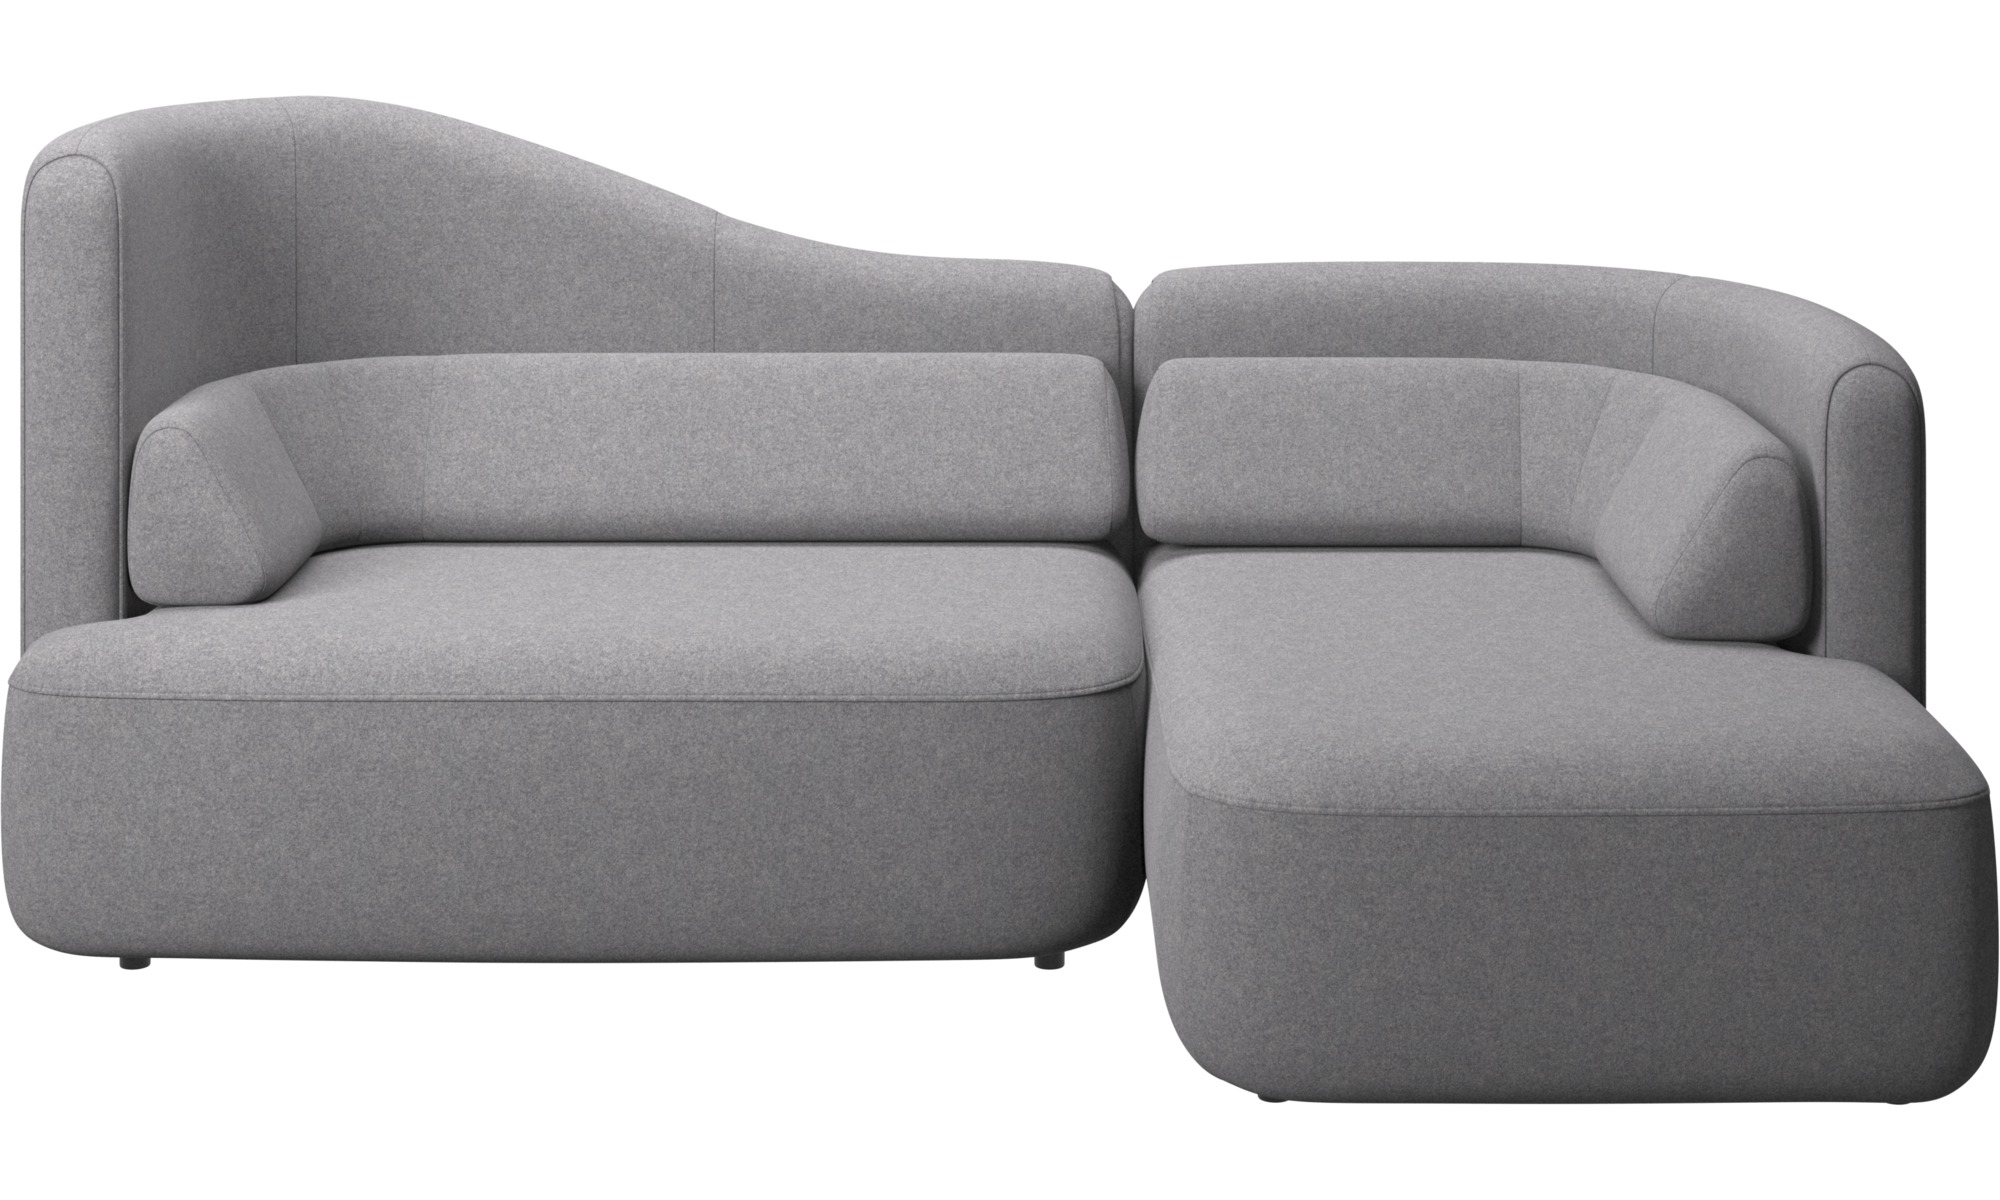 Mini Sofas With Newest Living Room : Modular Sofas For Small Spaces Space Saving Beds (View 10 of 20)